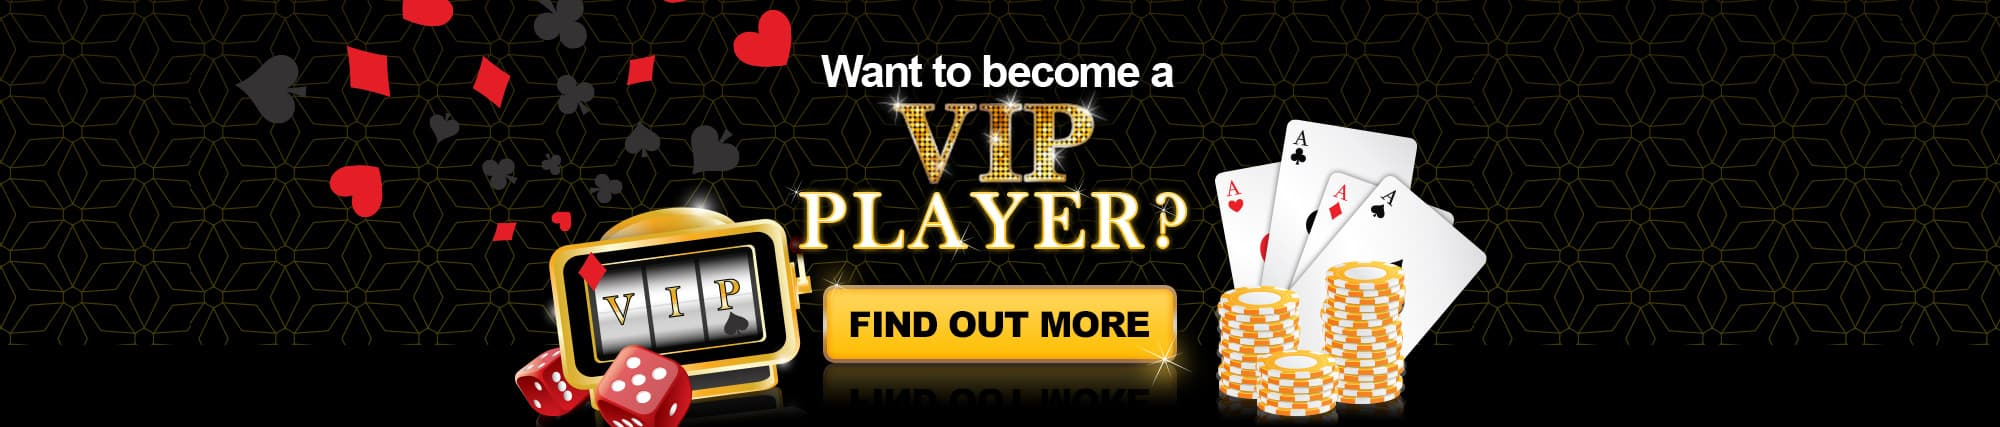 Become a VIP Player - Only at Vegas Baby